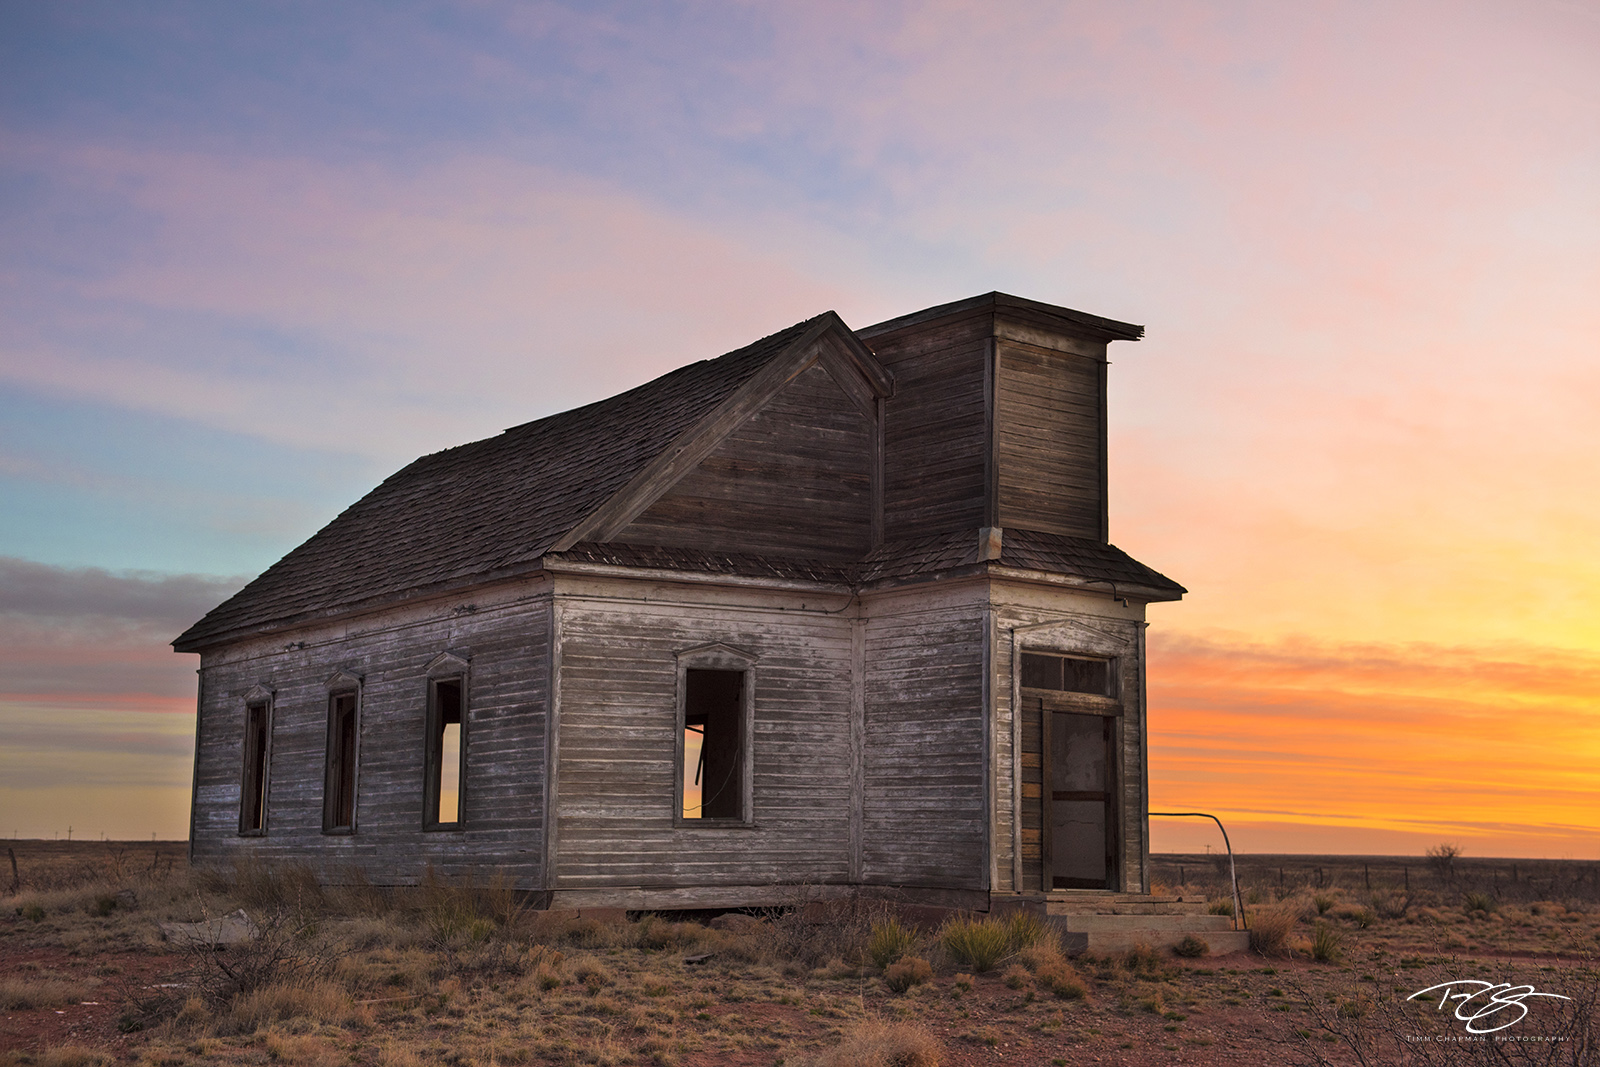 new mexico, gallery, mass, Morning Mass, abandoned, vacant, church, schoolhouse, dawn, early, morning, wooden, vacated, falling down, crumbling, sunrise, sunset, orange, warm, texas, taiban, photo